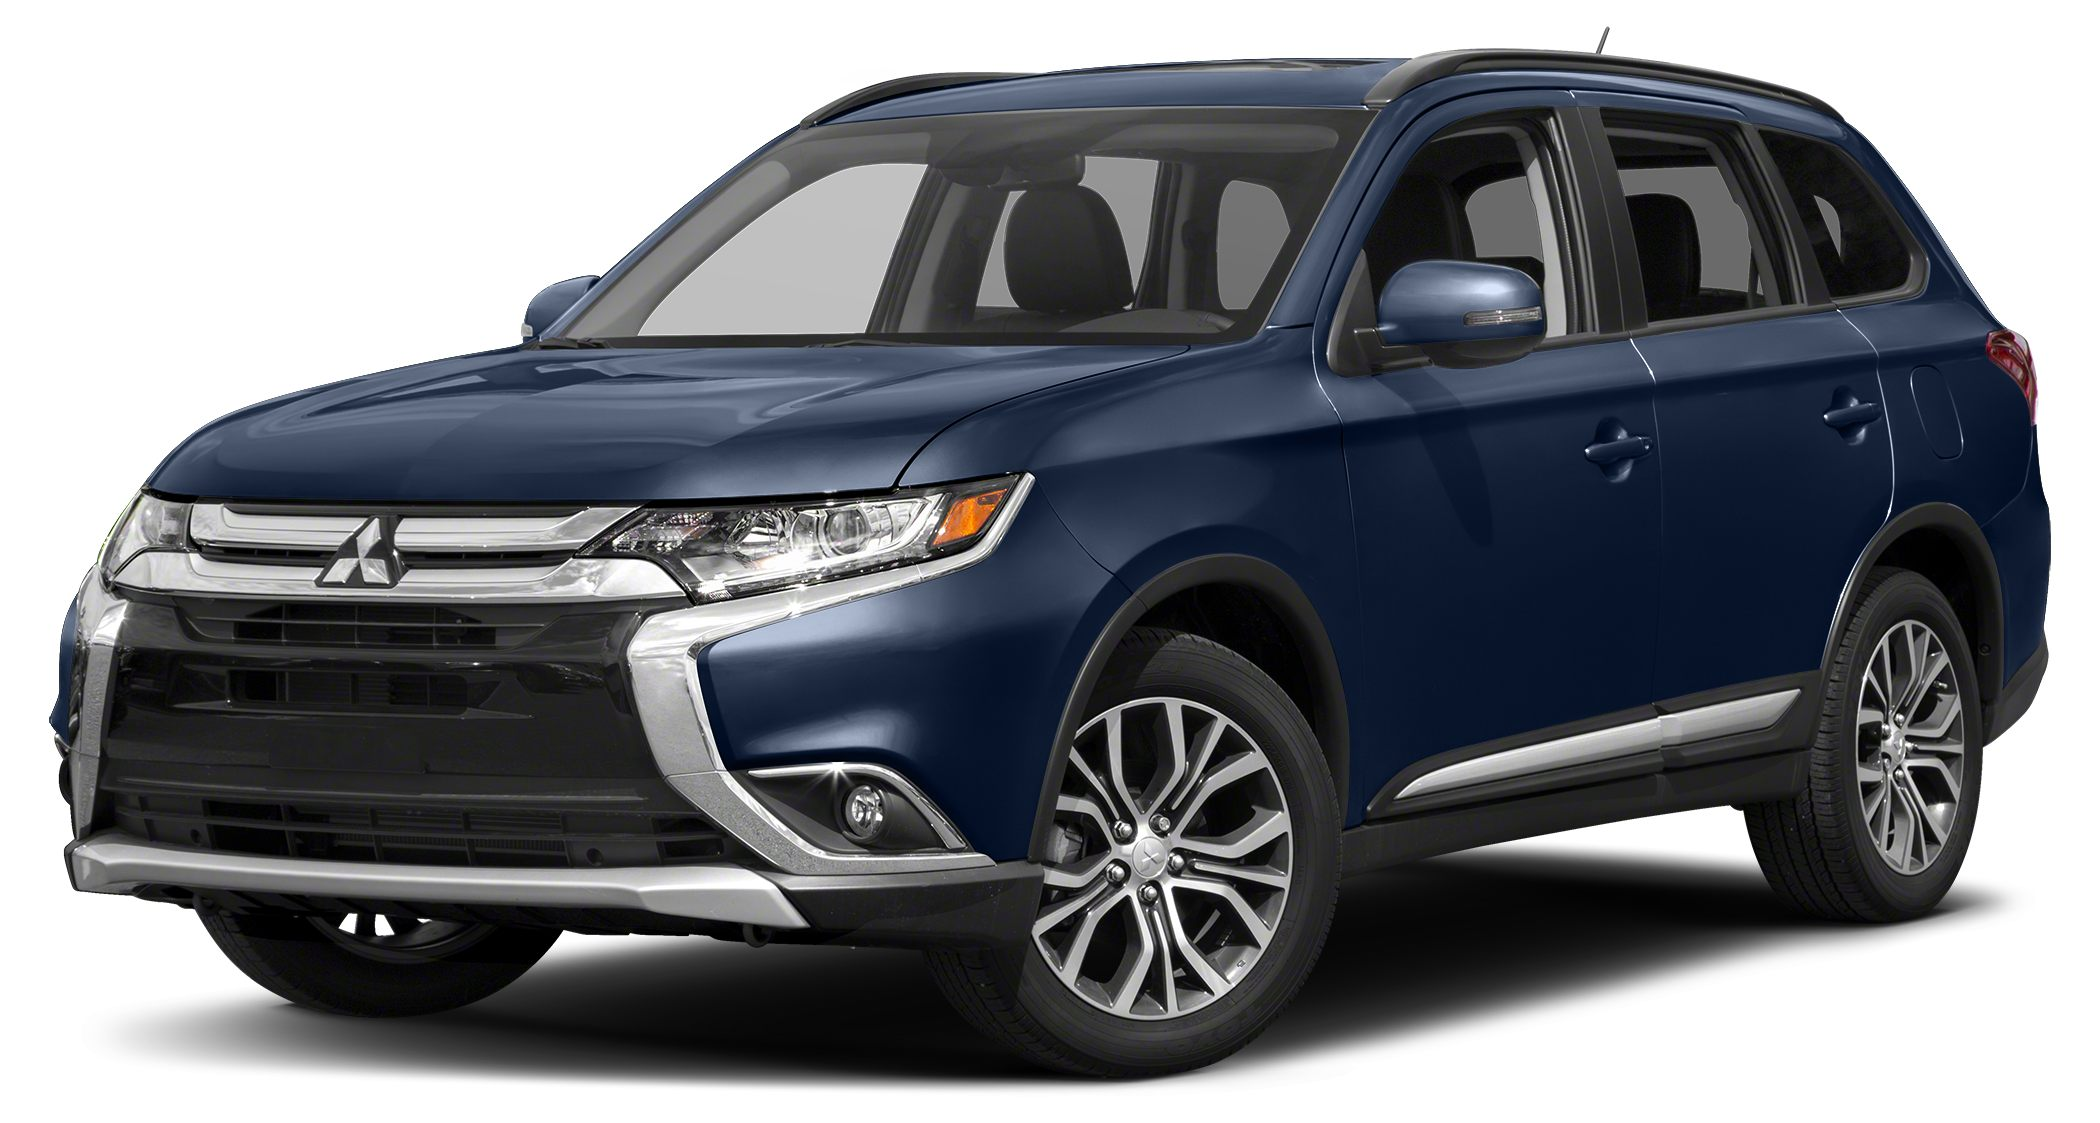 2017 Mitsubishi Outlander SEL The Mitsubishi Outlander with a tough upper front grille in a new l